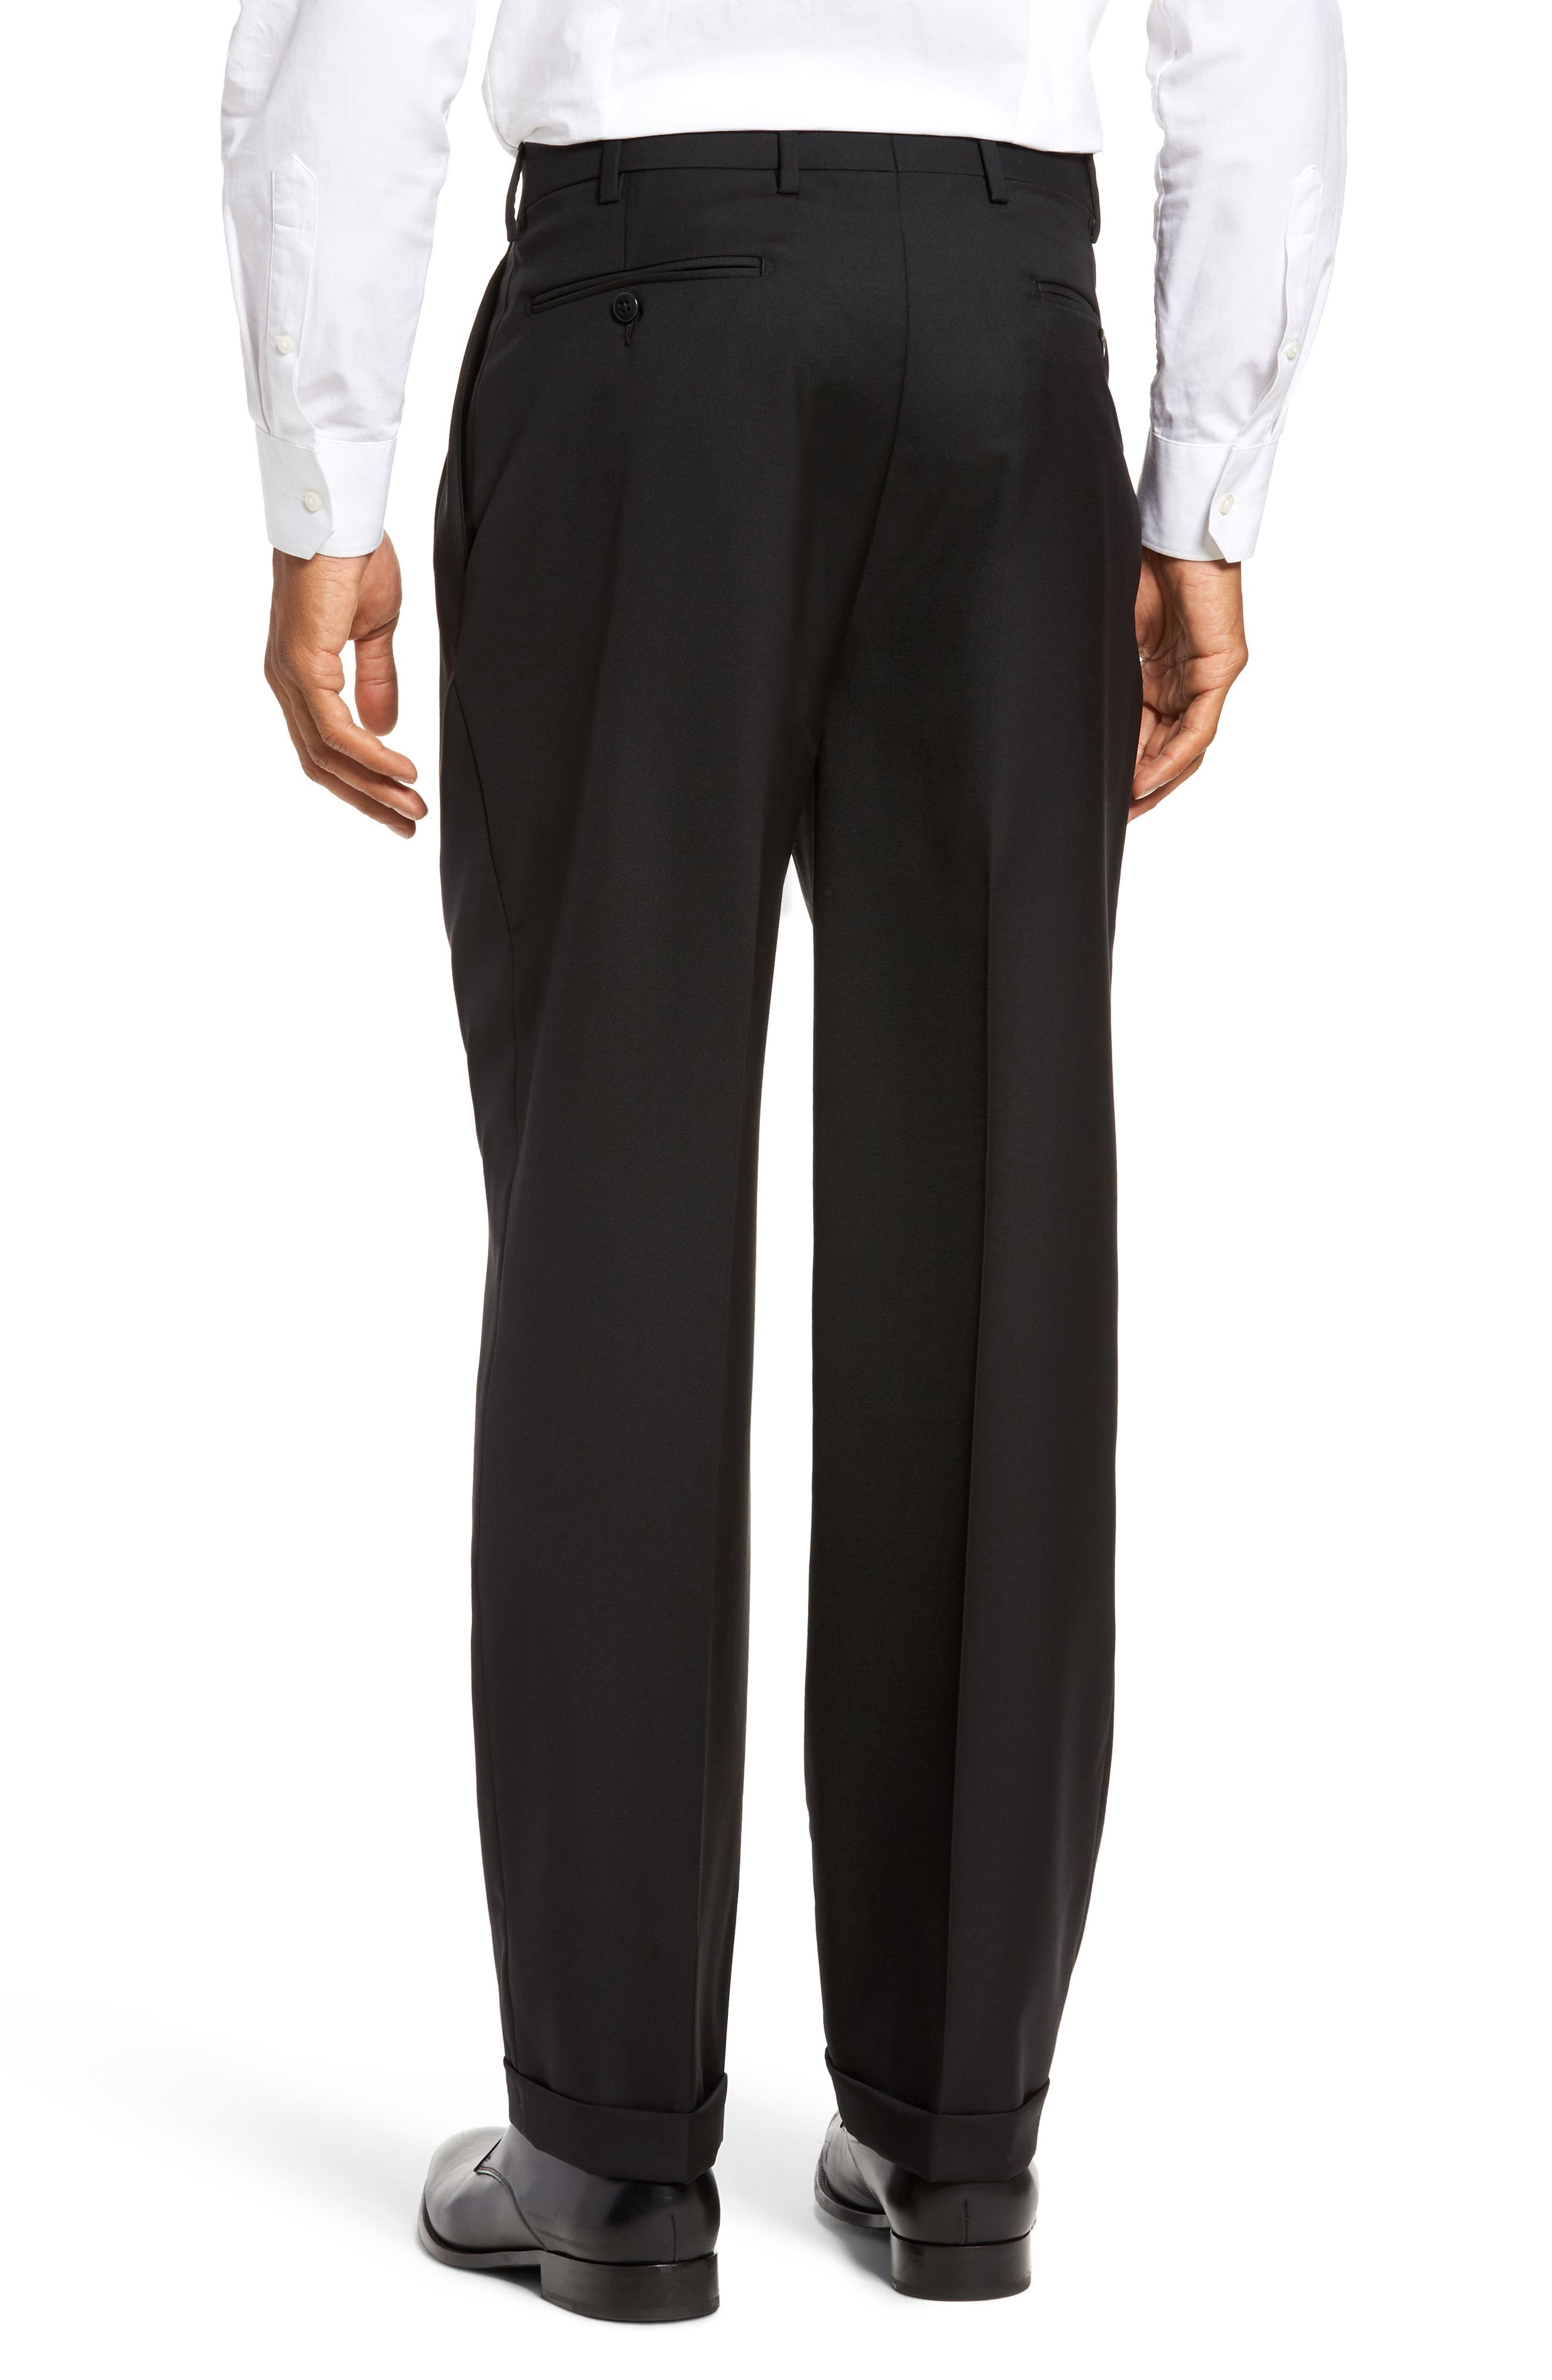 ZANELLA, Bennett Regular Fit Pleated Trousers, Alternate thumbnail 3, color, BLACK